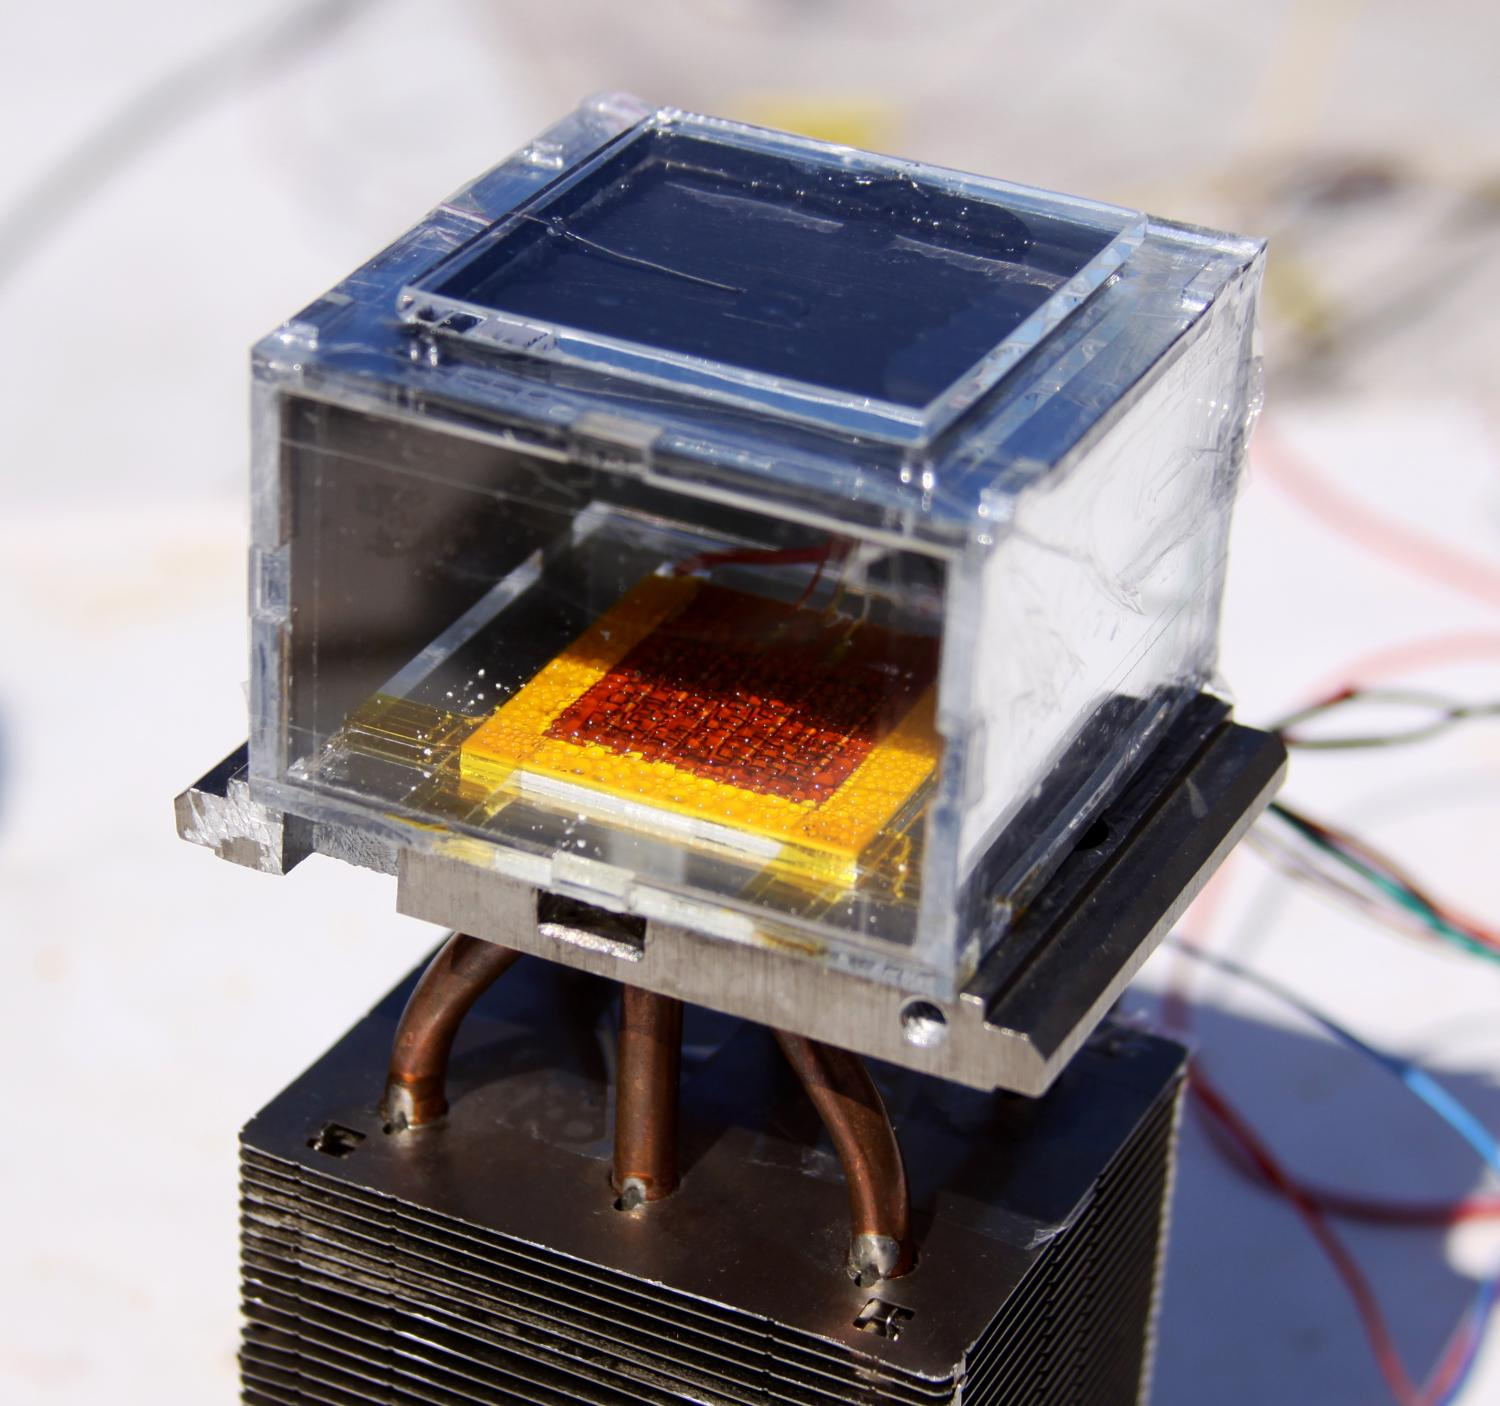 Solar-Powered Device Which Can Draw Water out of Air in Desserts